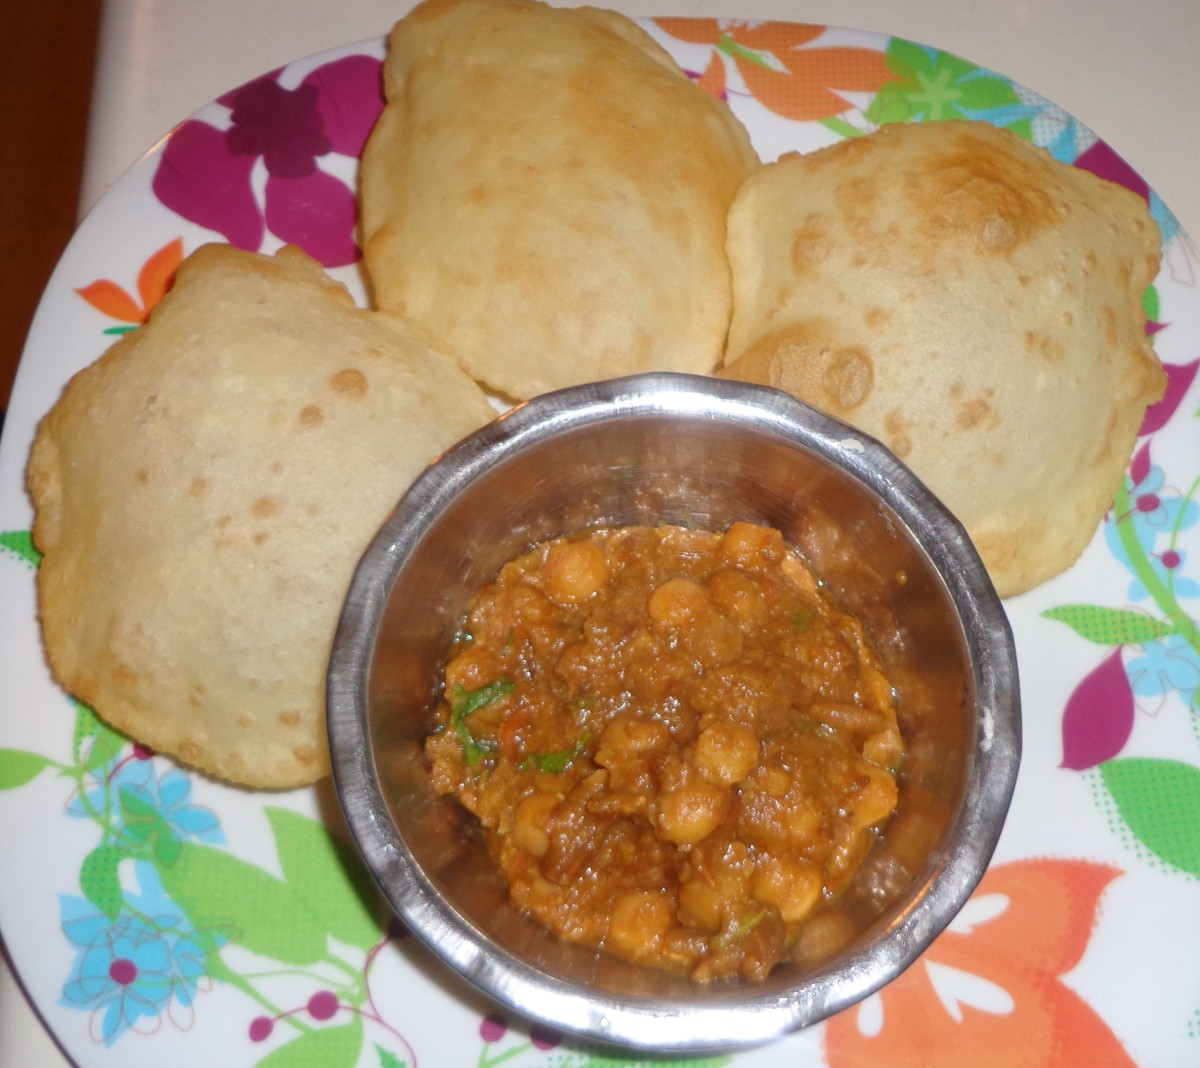 Bhatura with channa masala